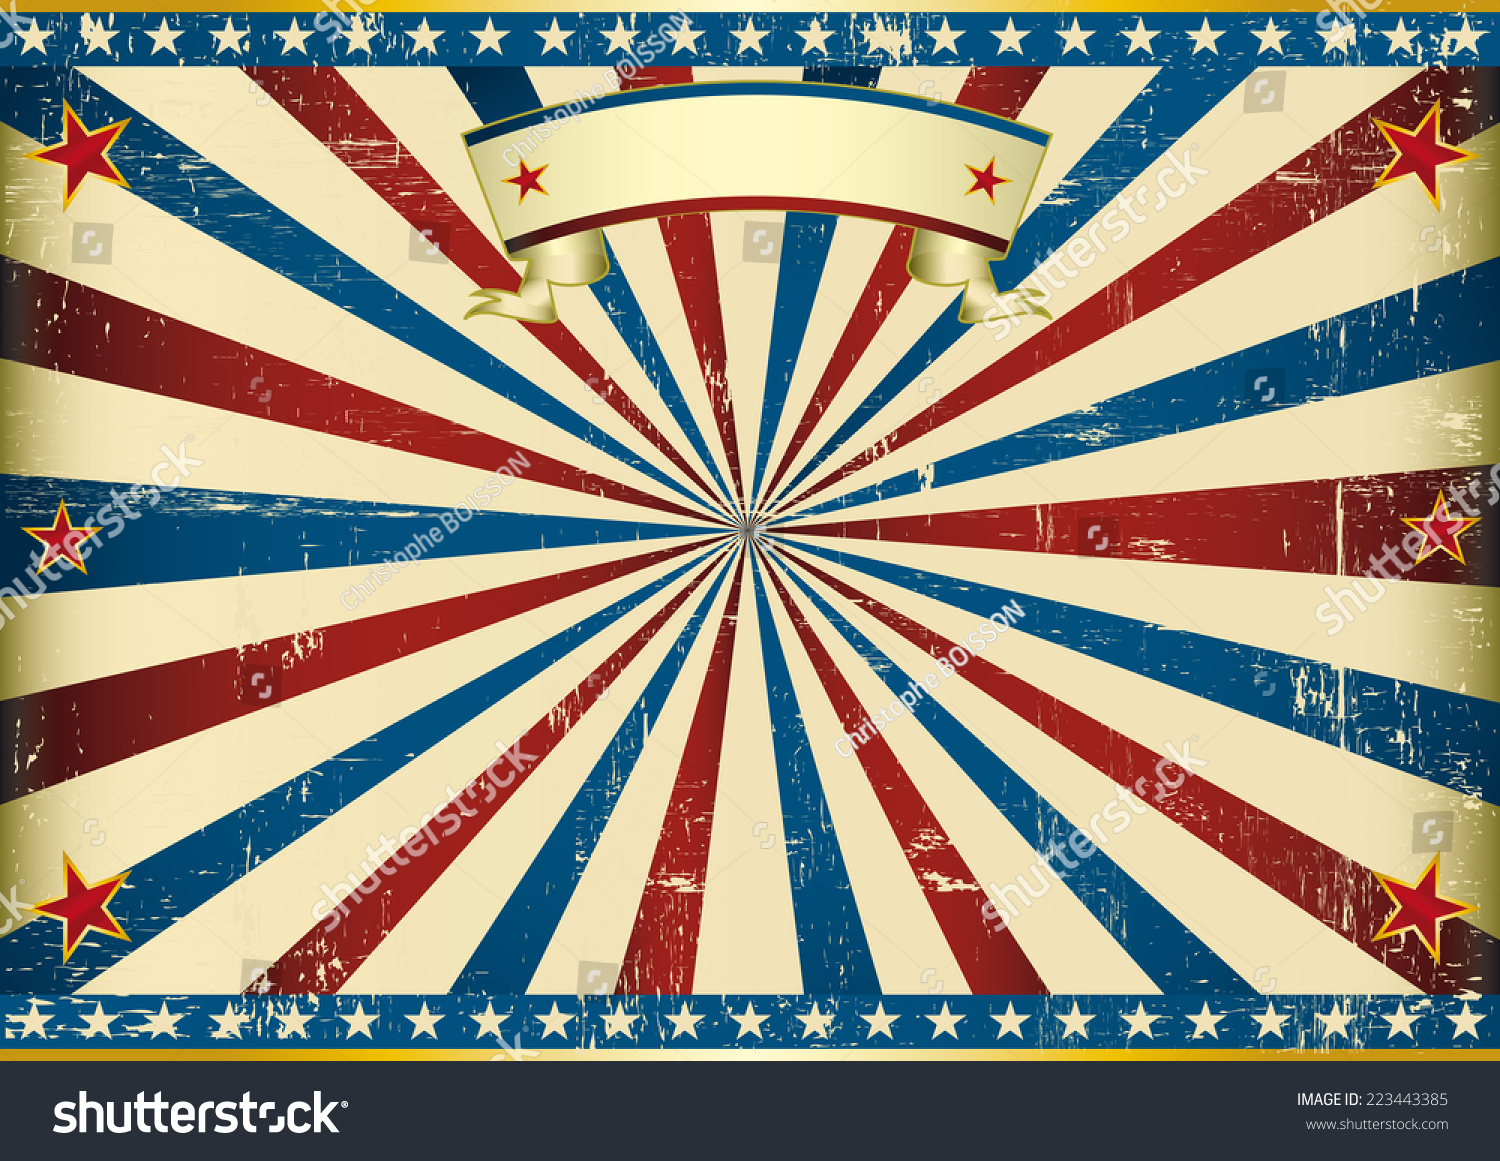 Horizontal Textured American Background American Vintage Vector de ...